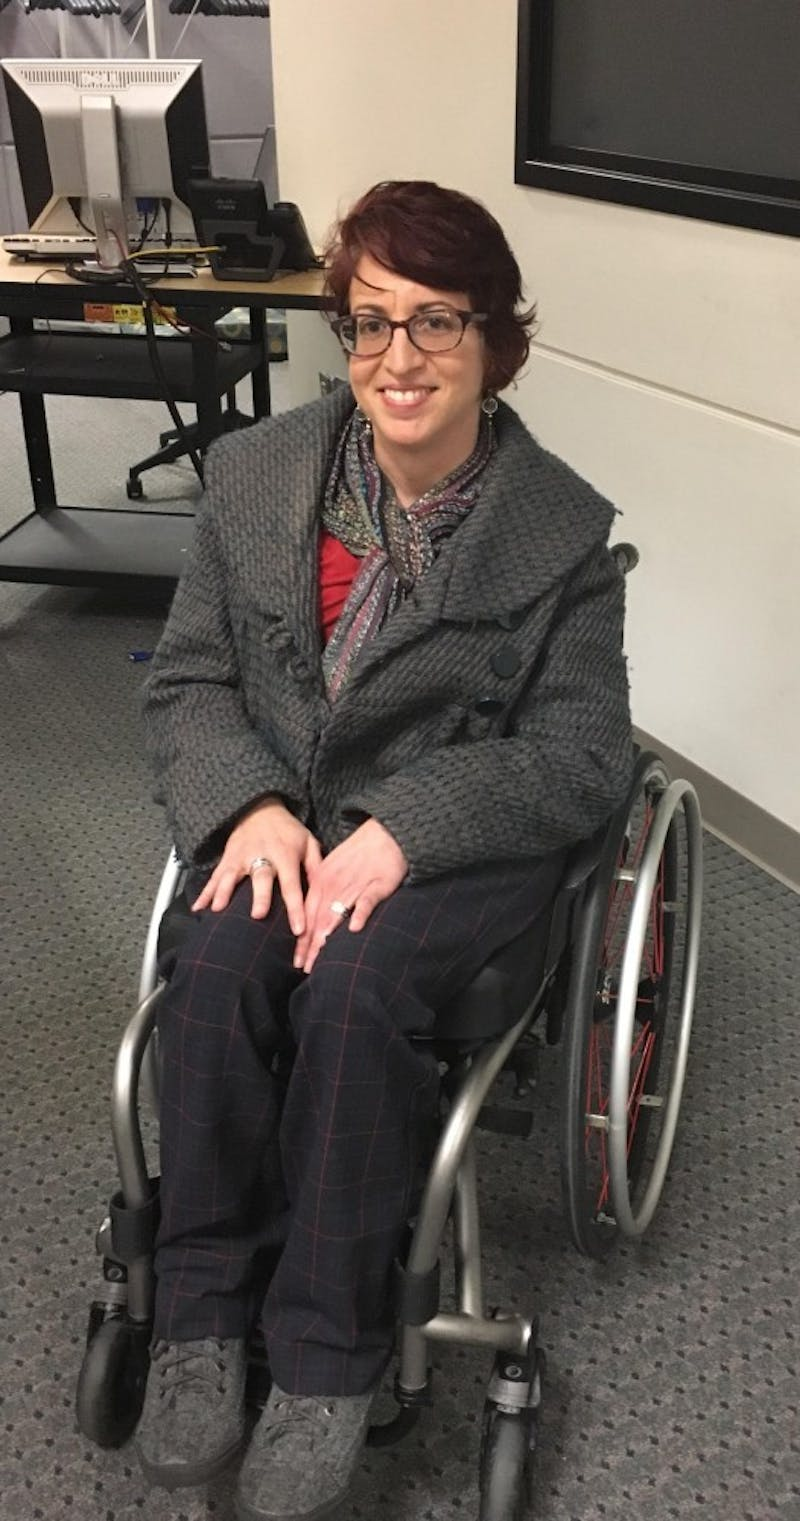 Liat Ben-Moshe, Ph.D., assistant professor of disability studies at The University Of Toledo.